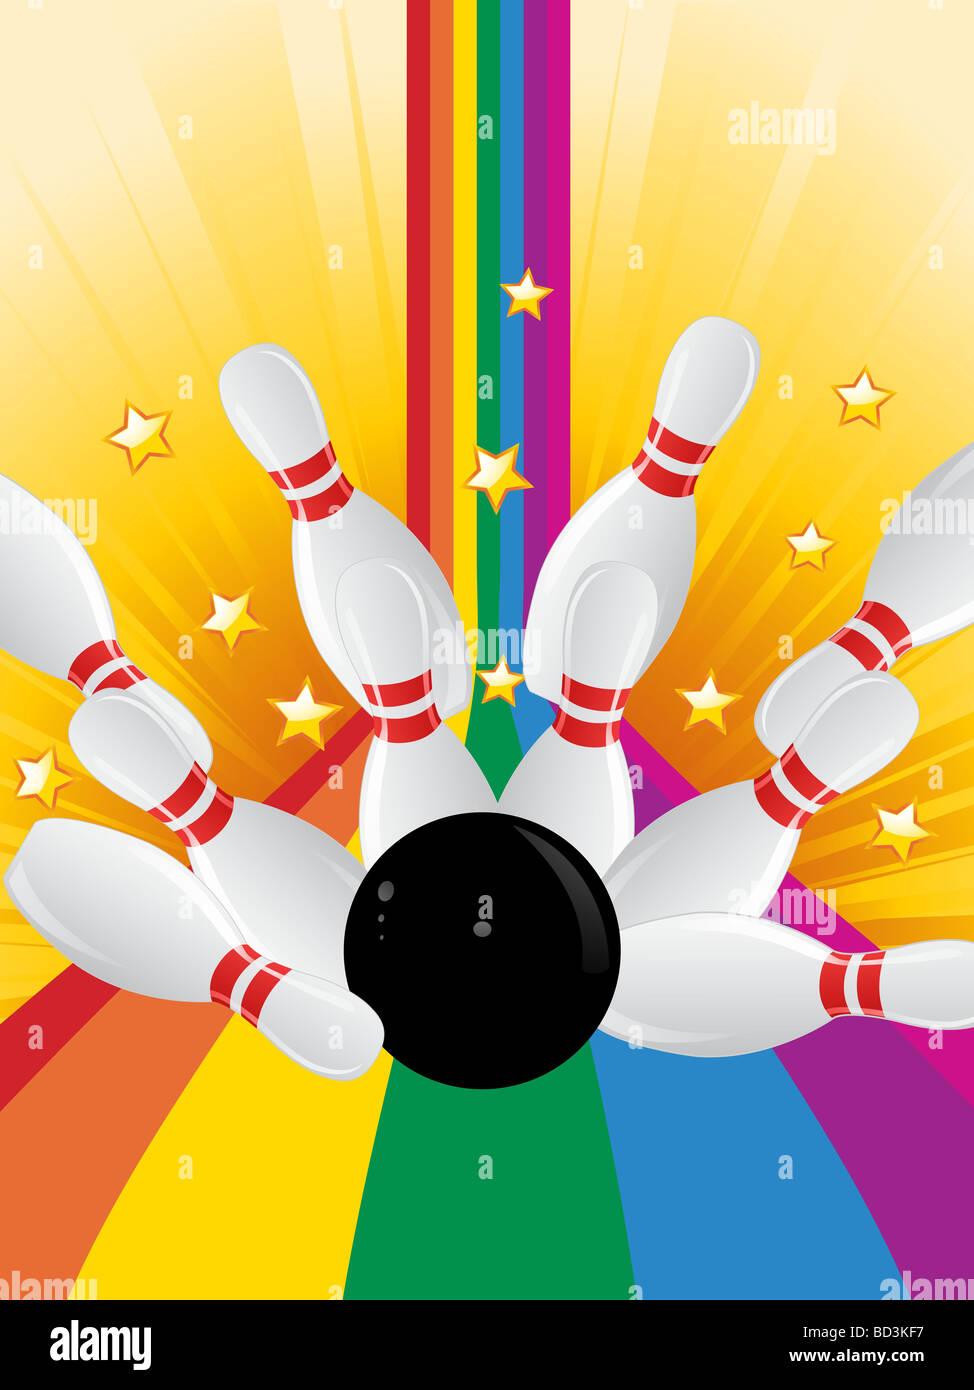 Bowling Ball Knocking Over Bowling Pins On A Rainbow